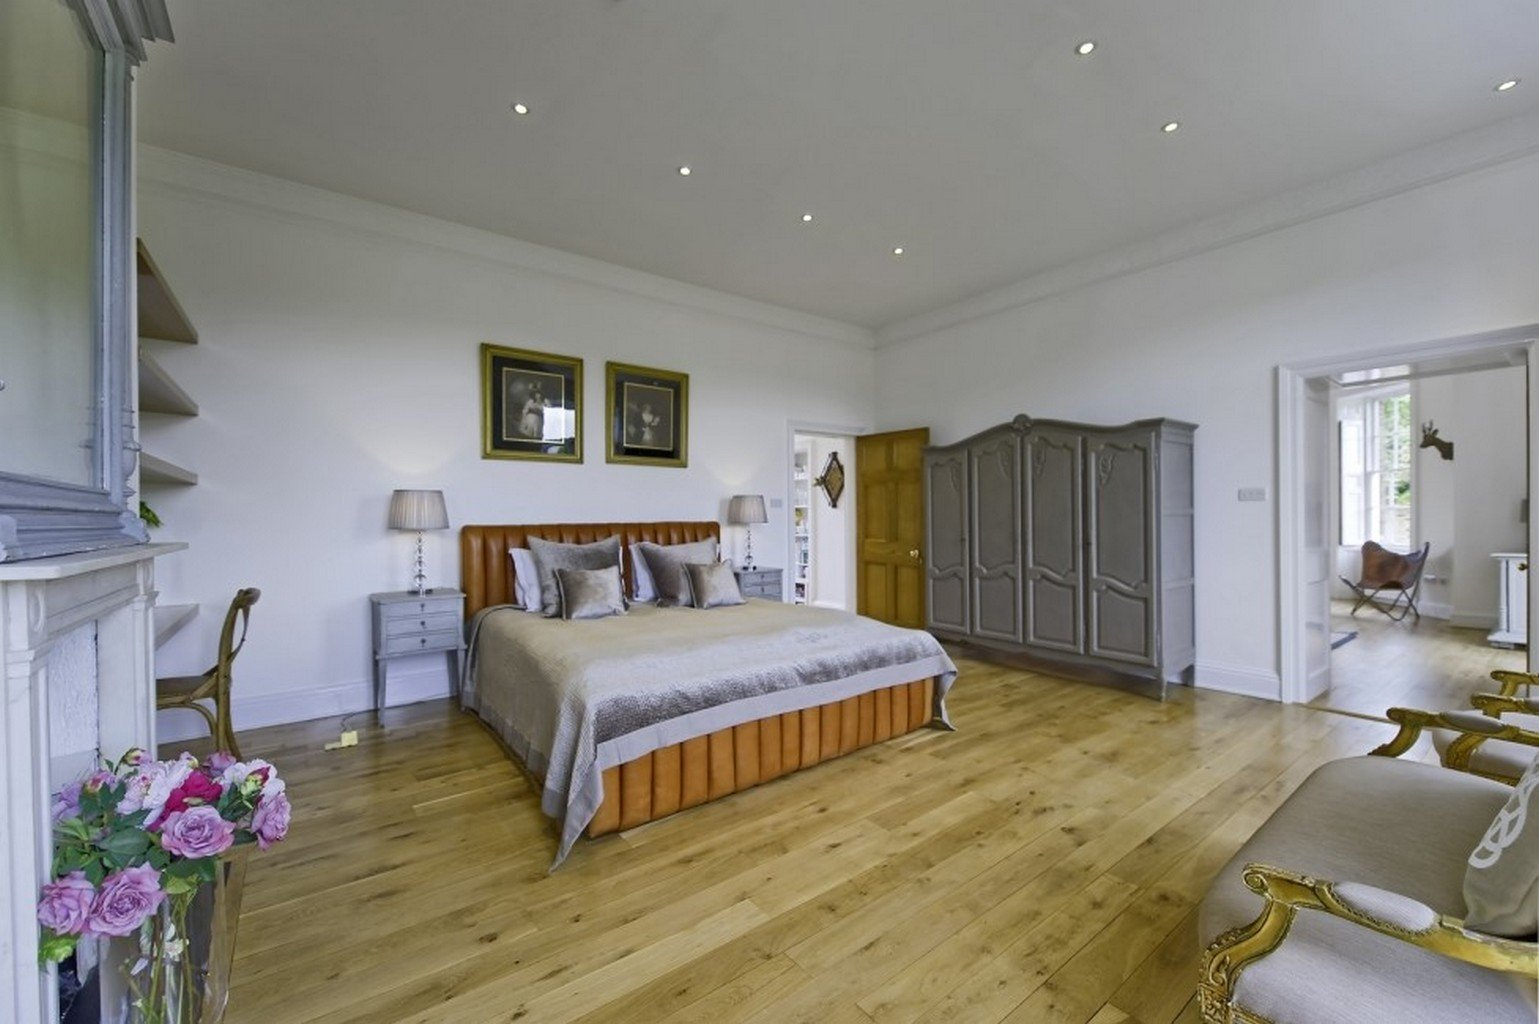 luxury wood flooring in spacious bedroom